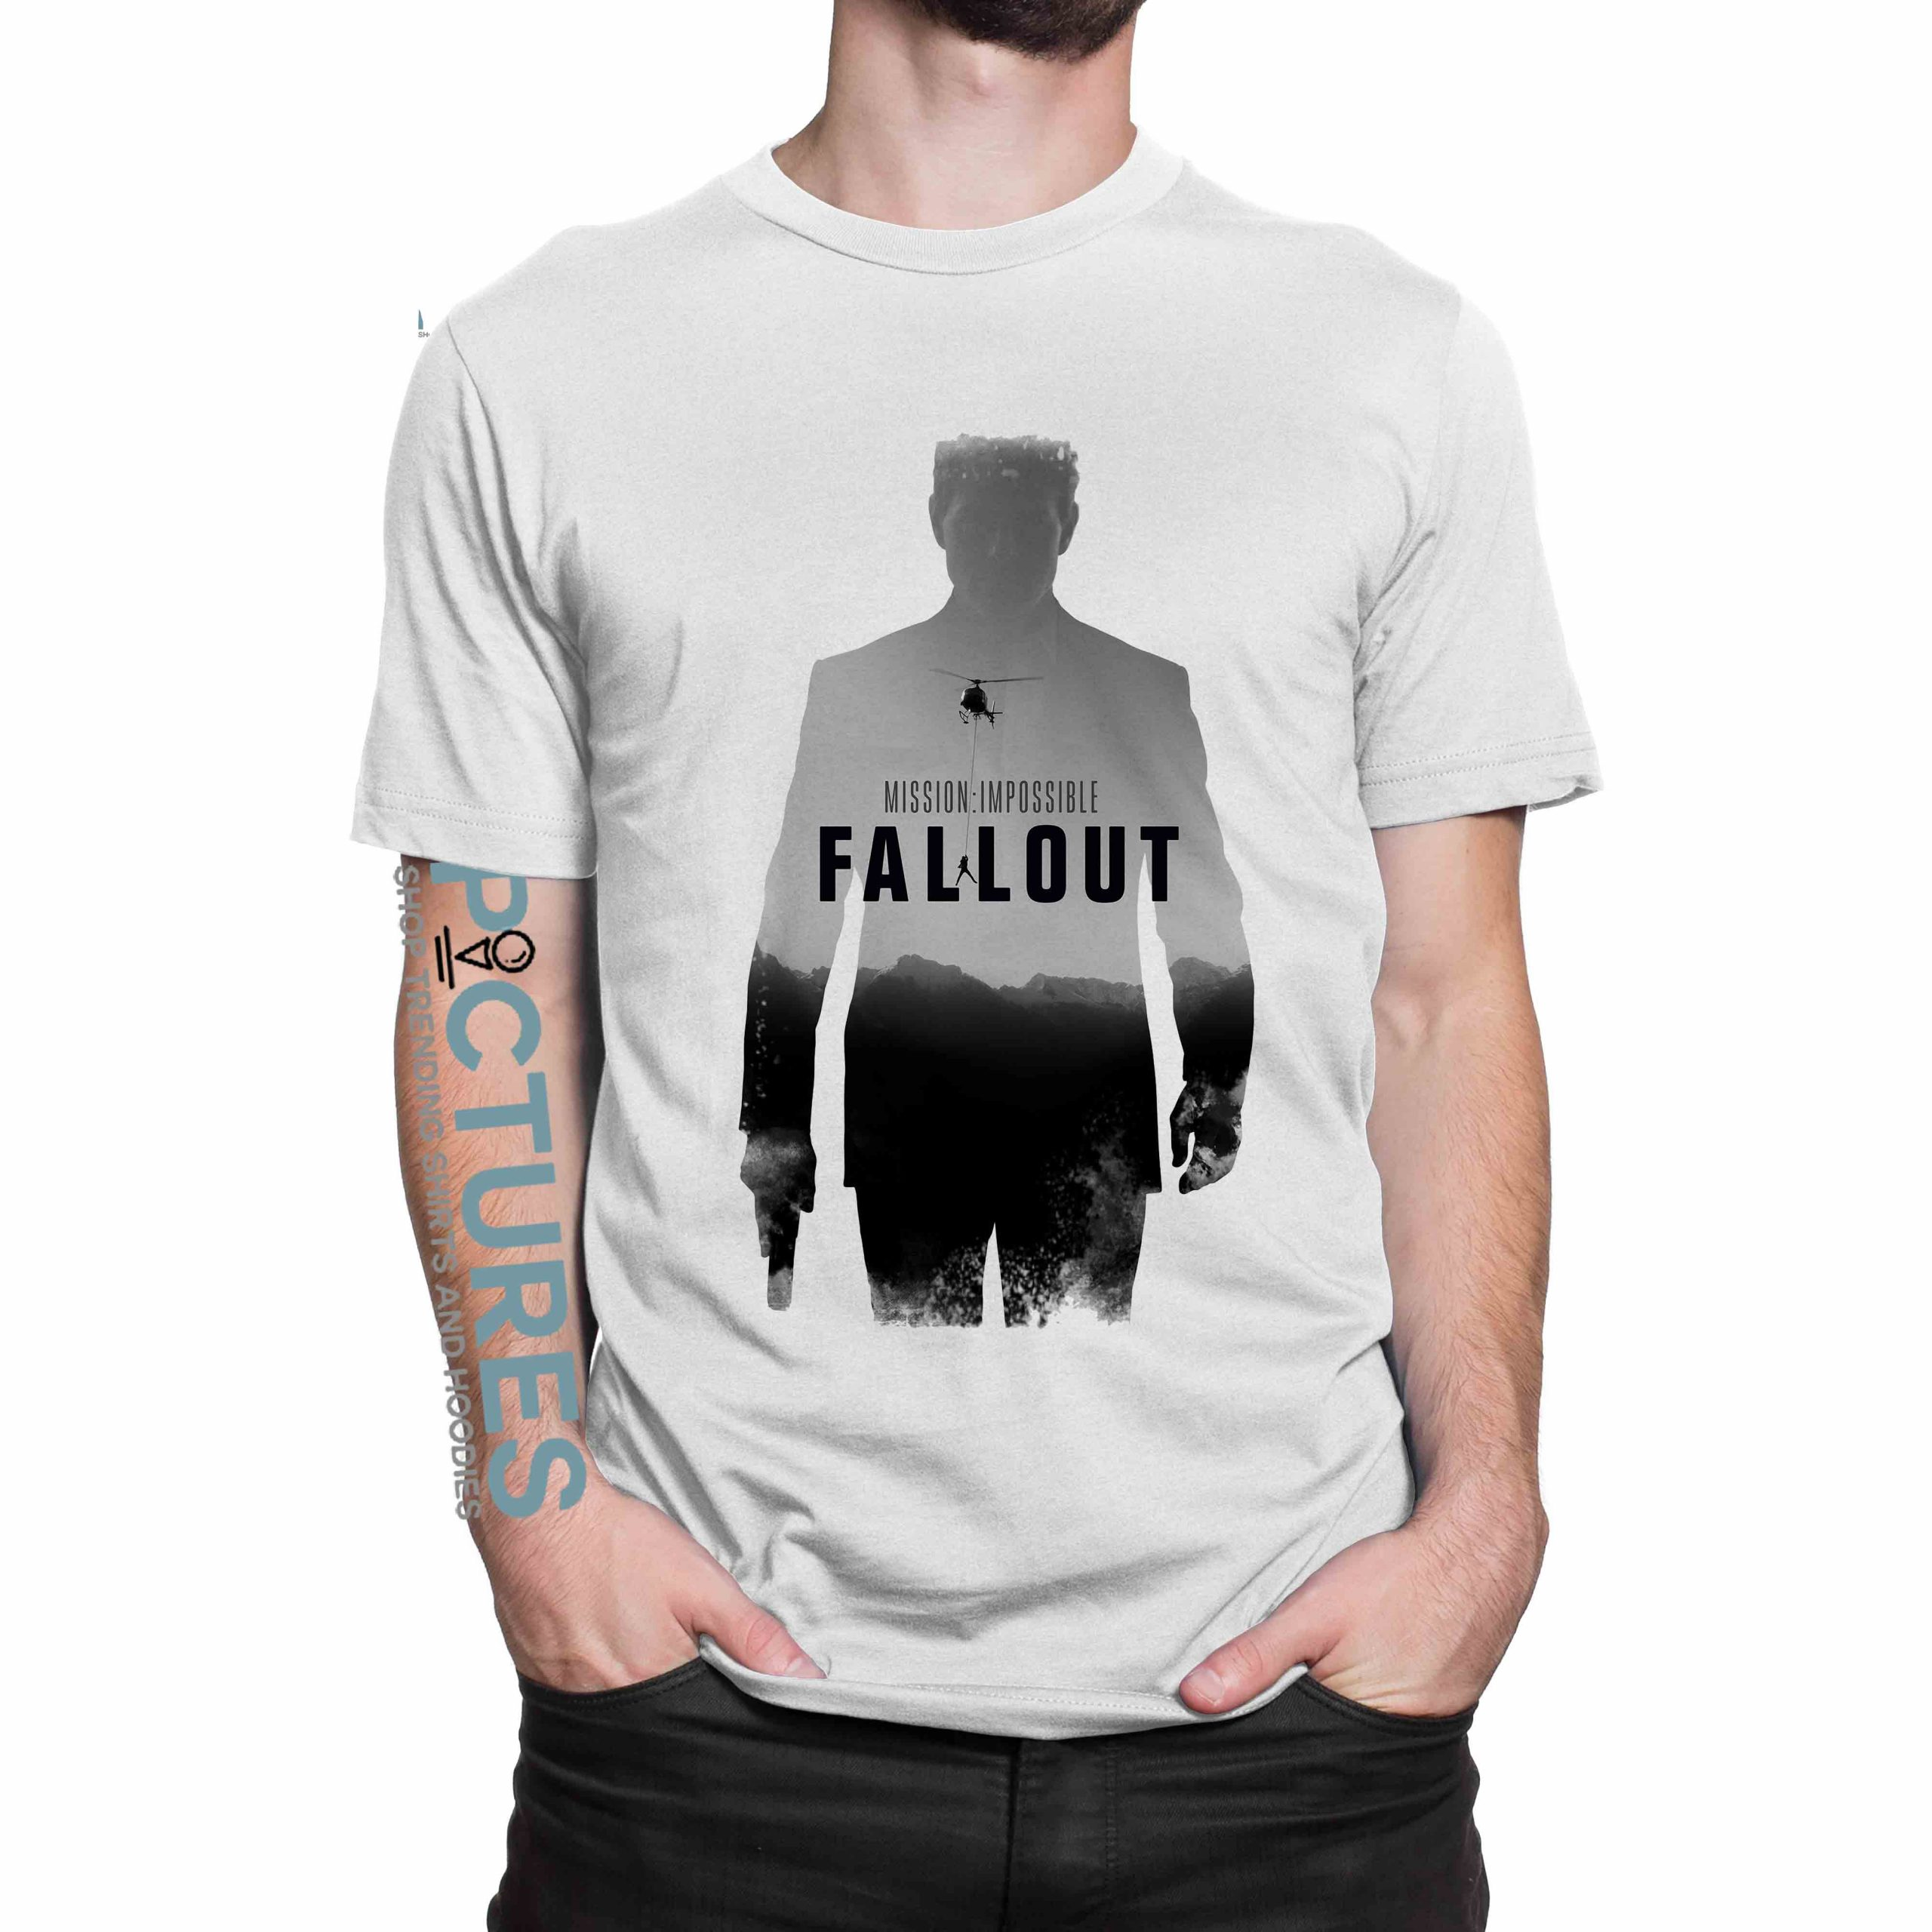 Mission Impossible Fallout shirt